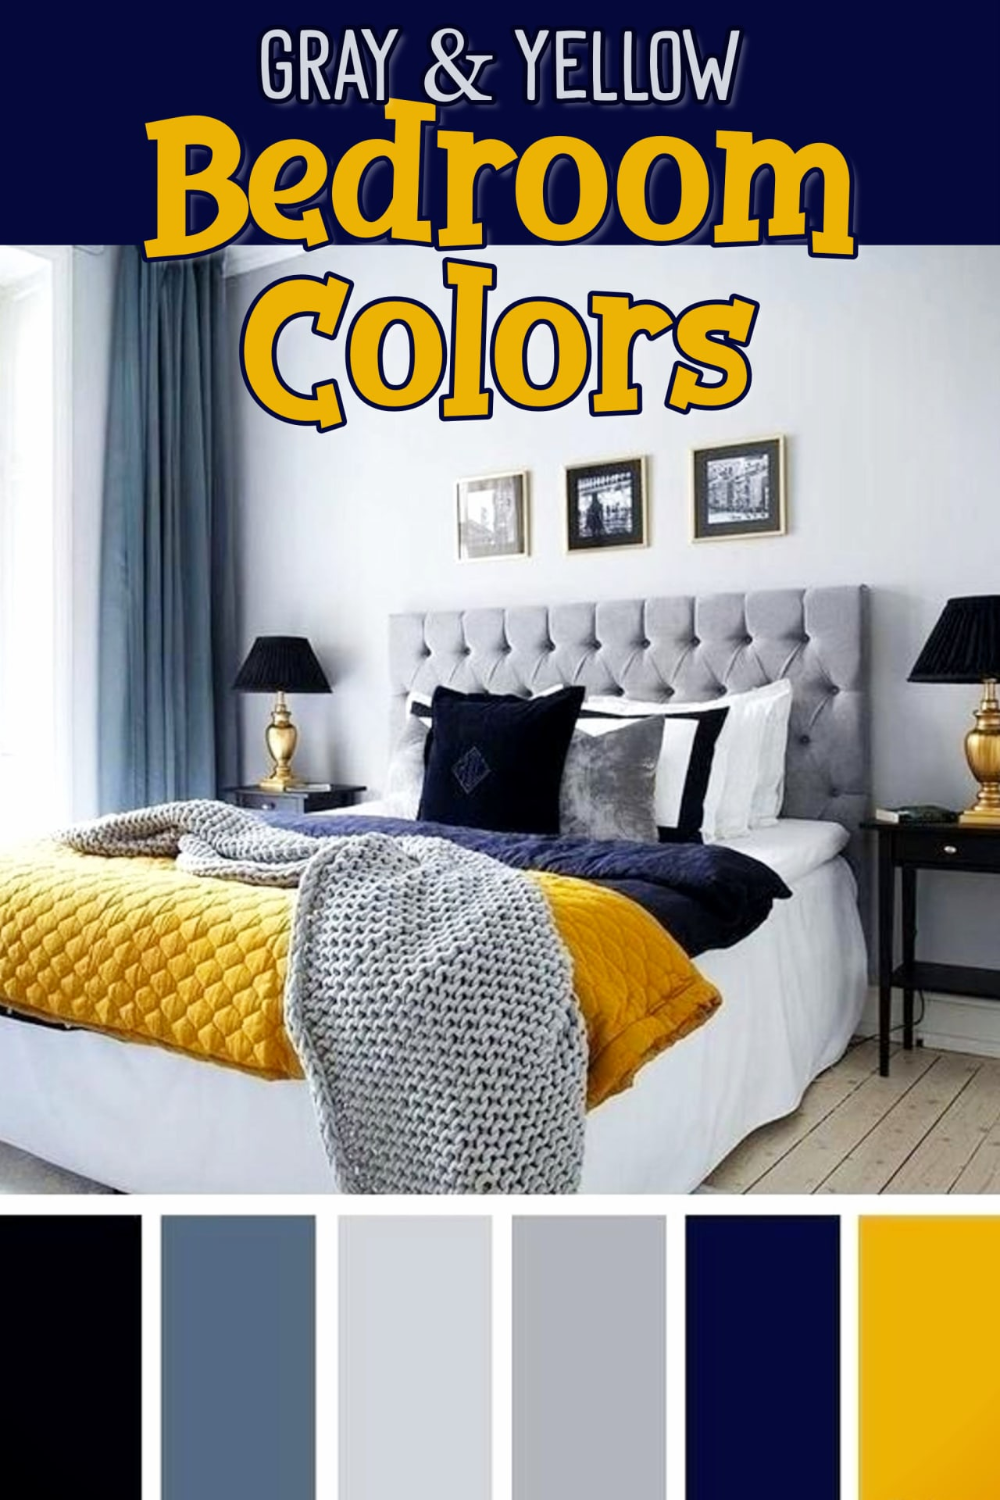 Gray and Yellow Bedroom Ideas -Yellow and Grey Bedding, Accent